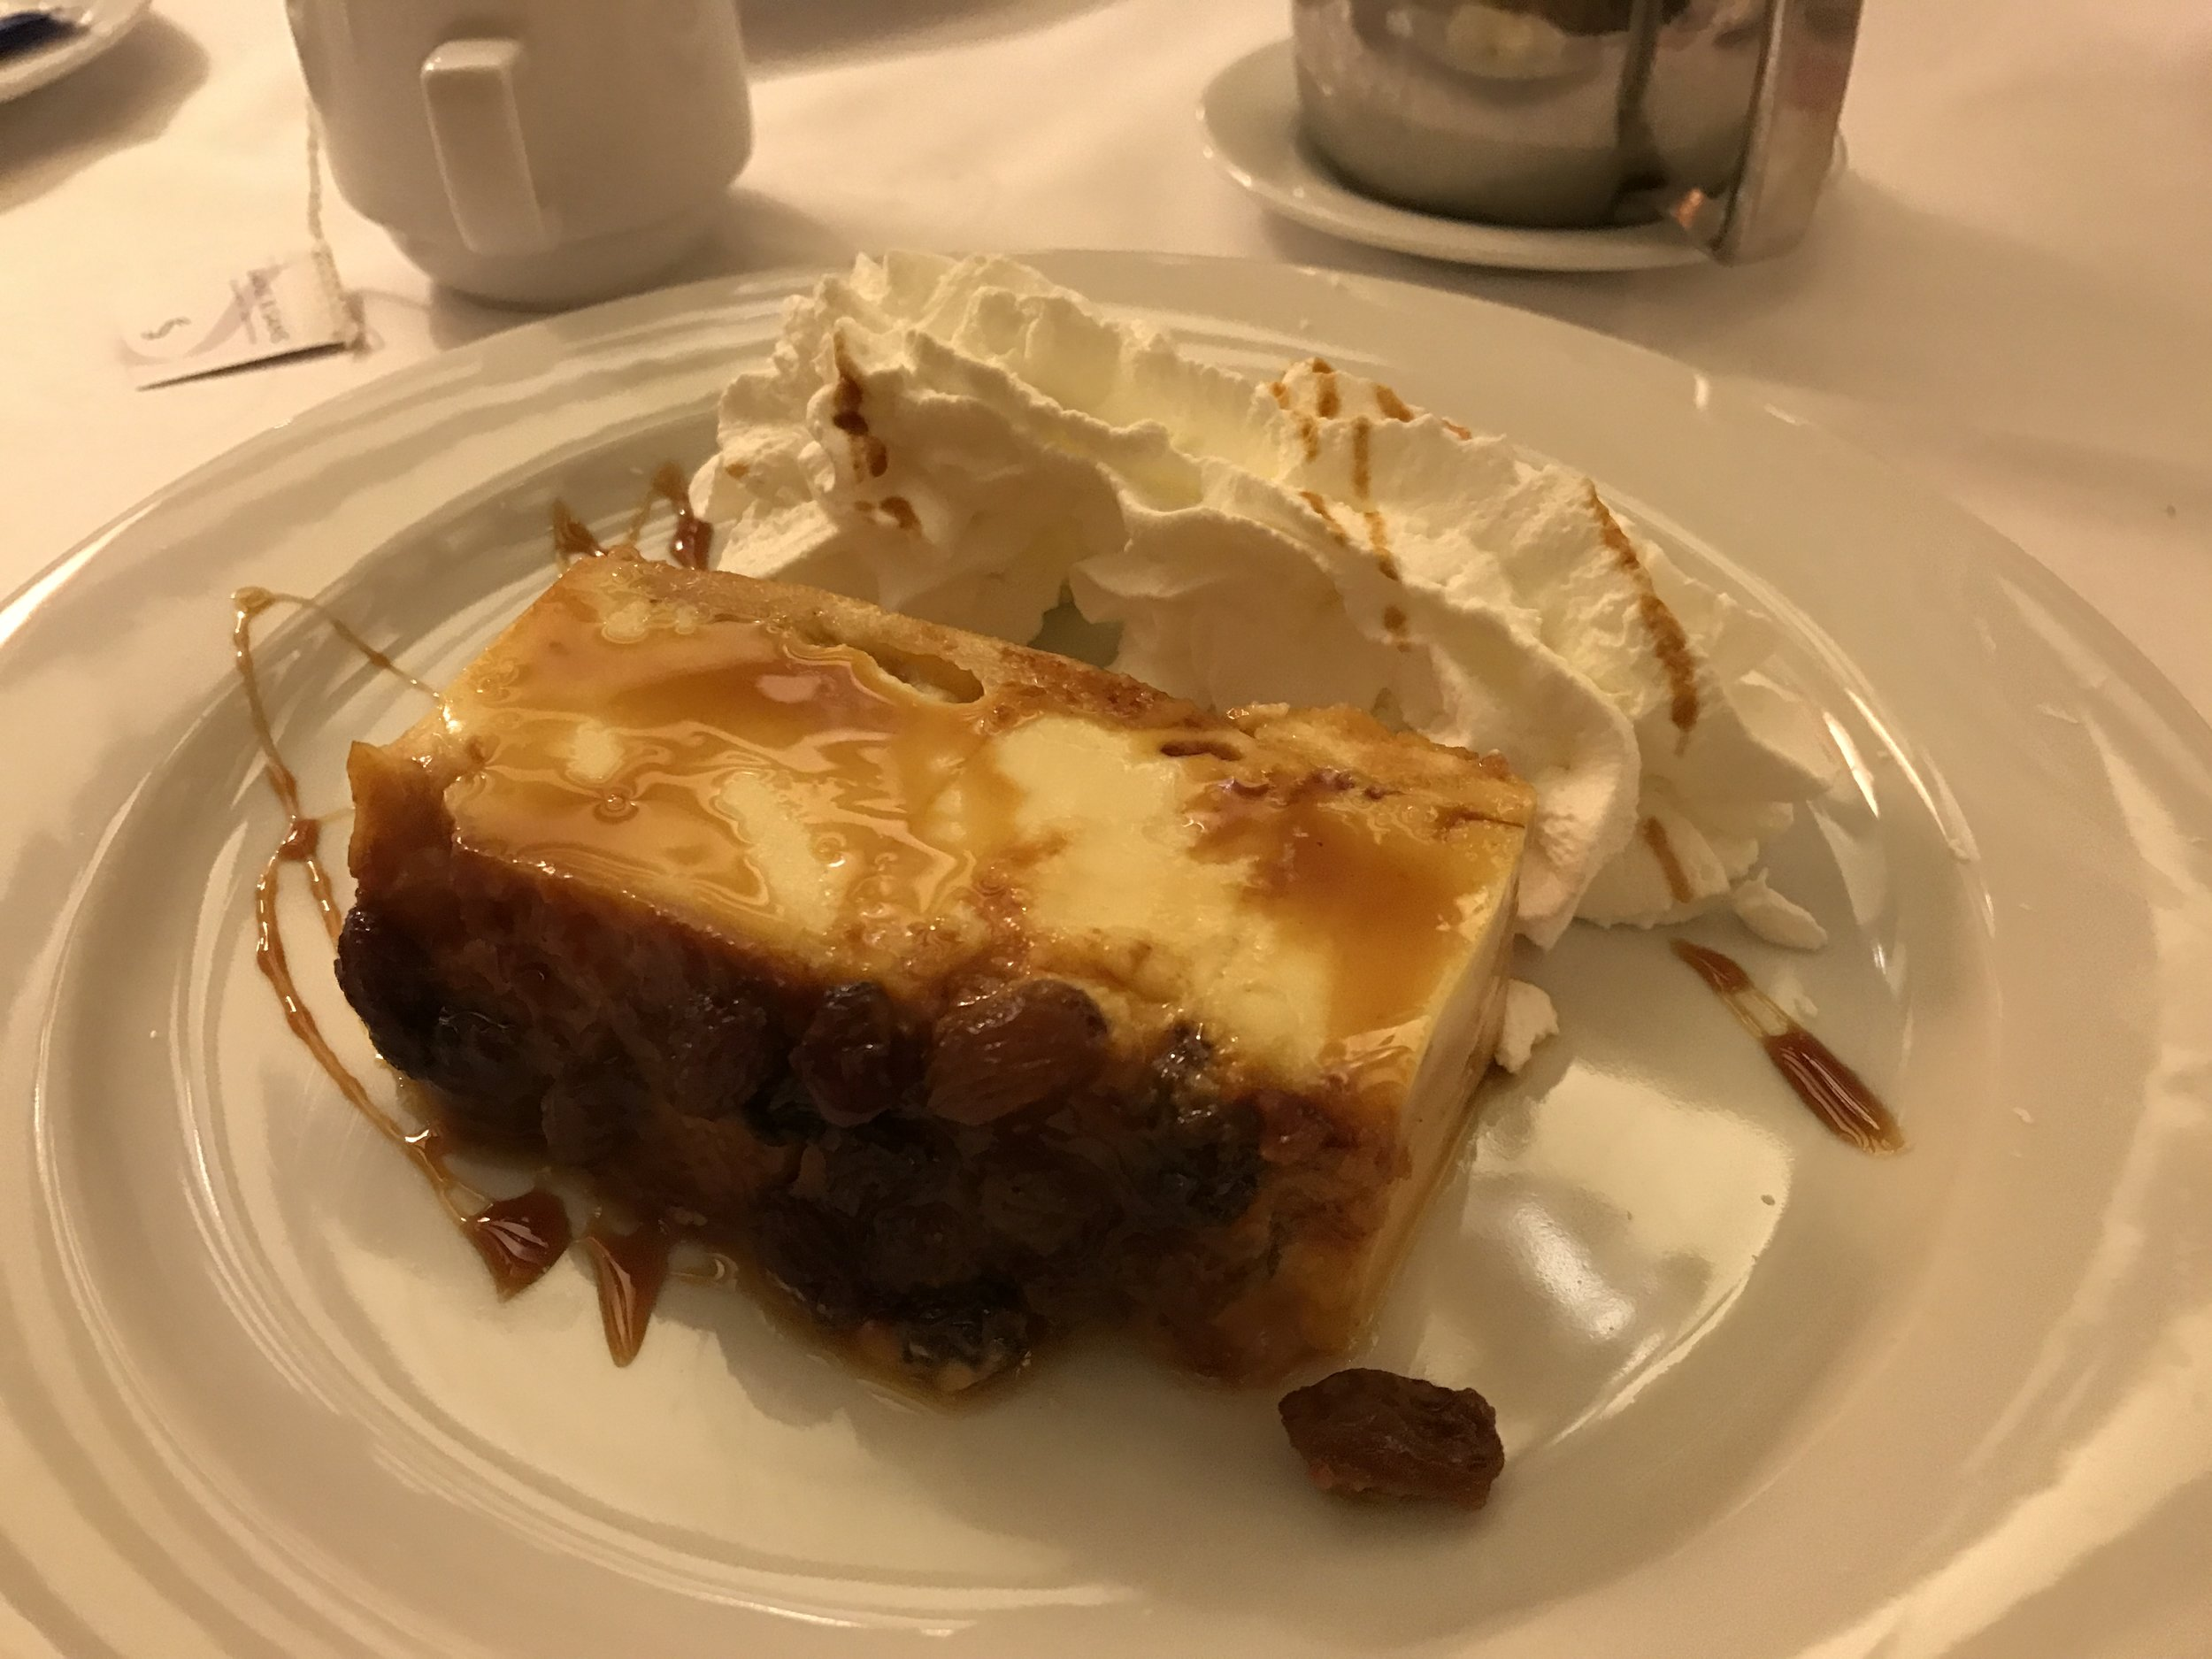 Finished the meal with  Puding de melindros